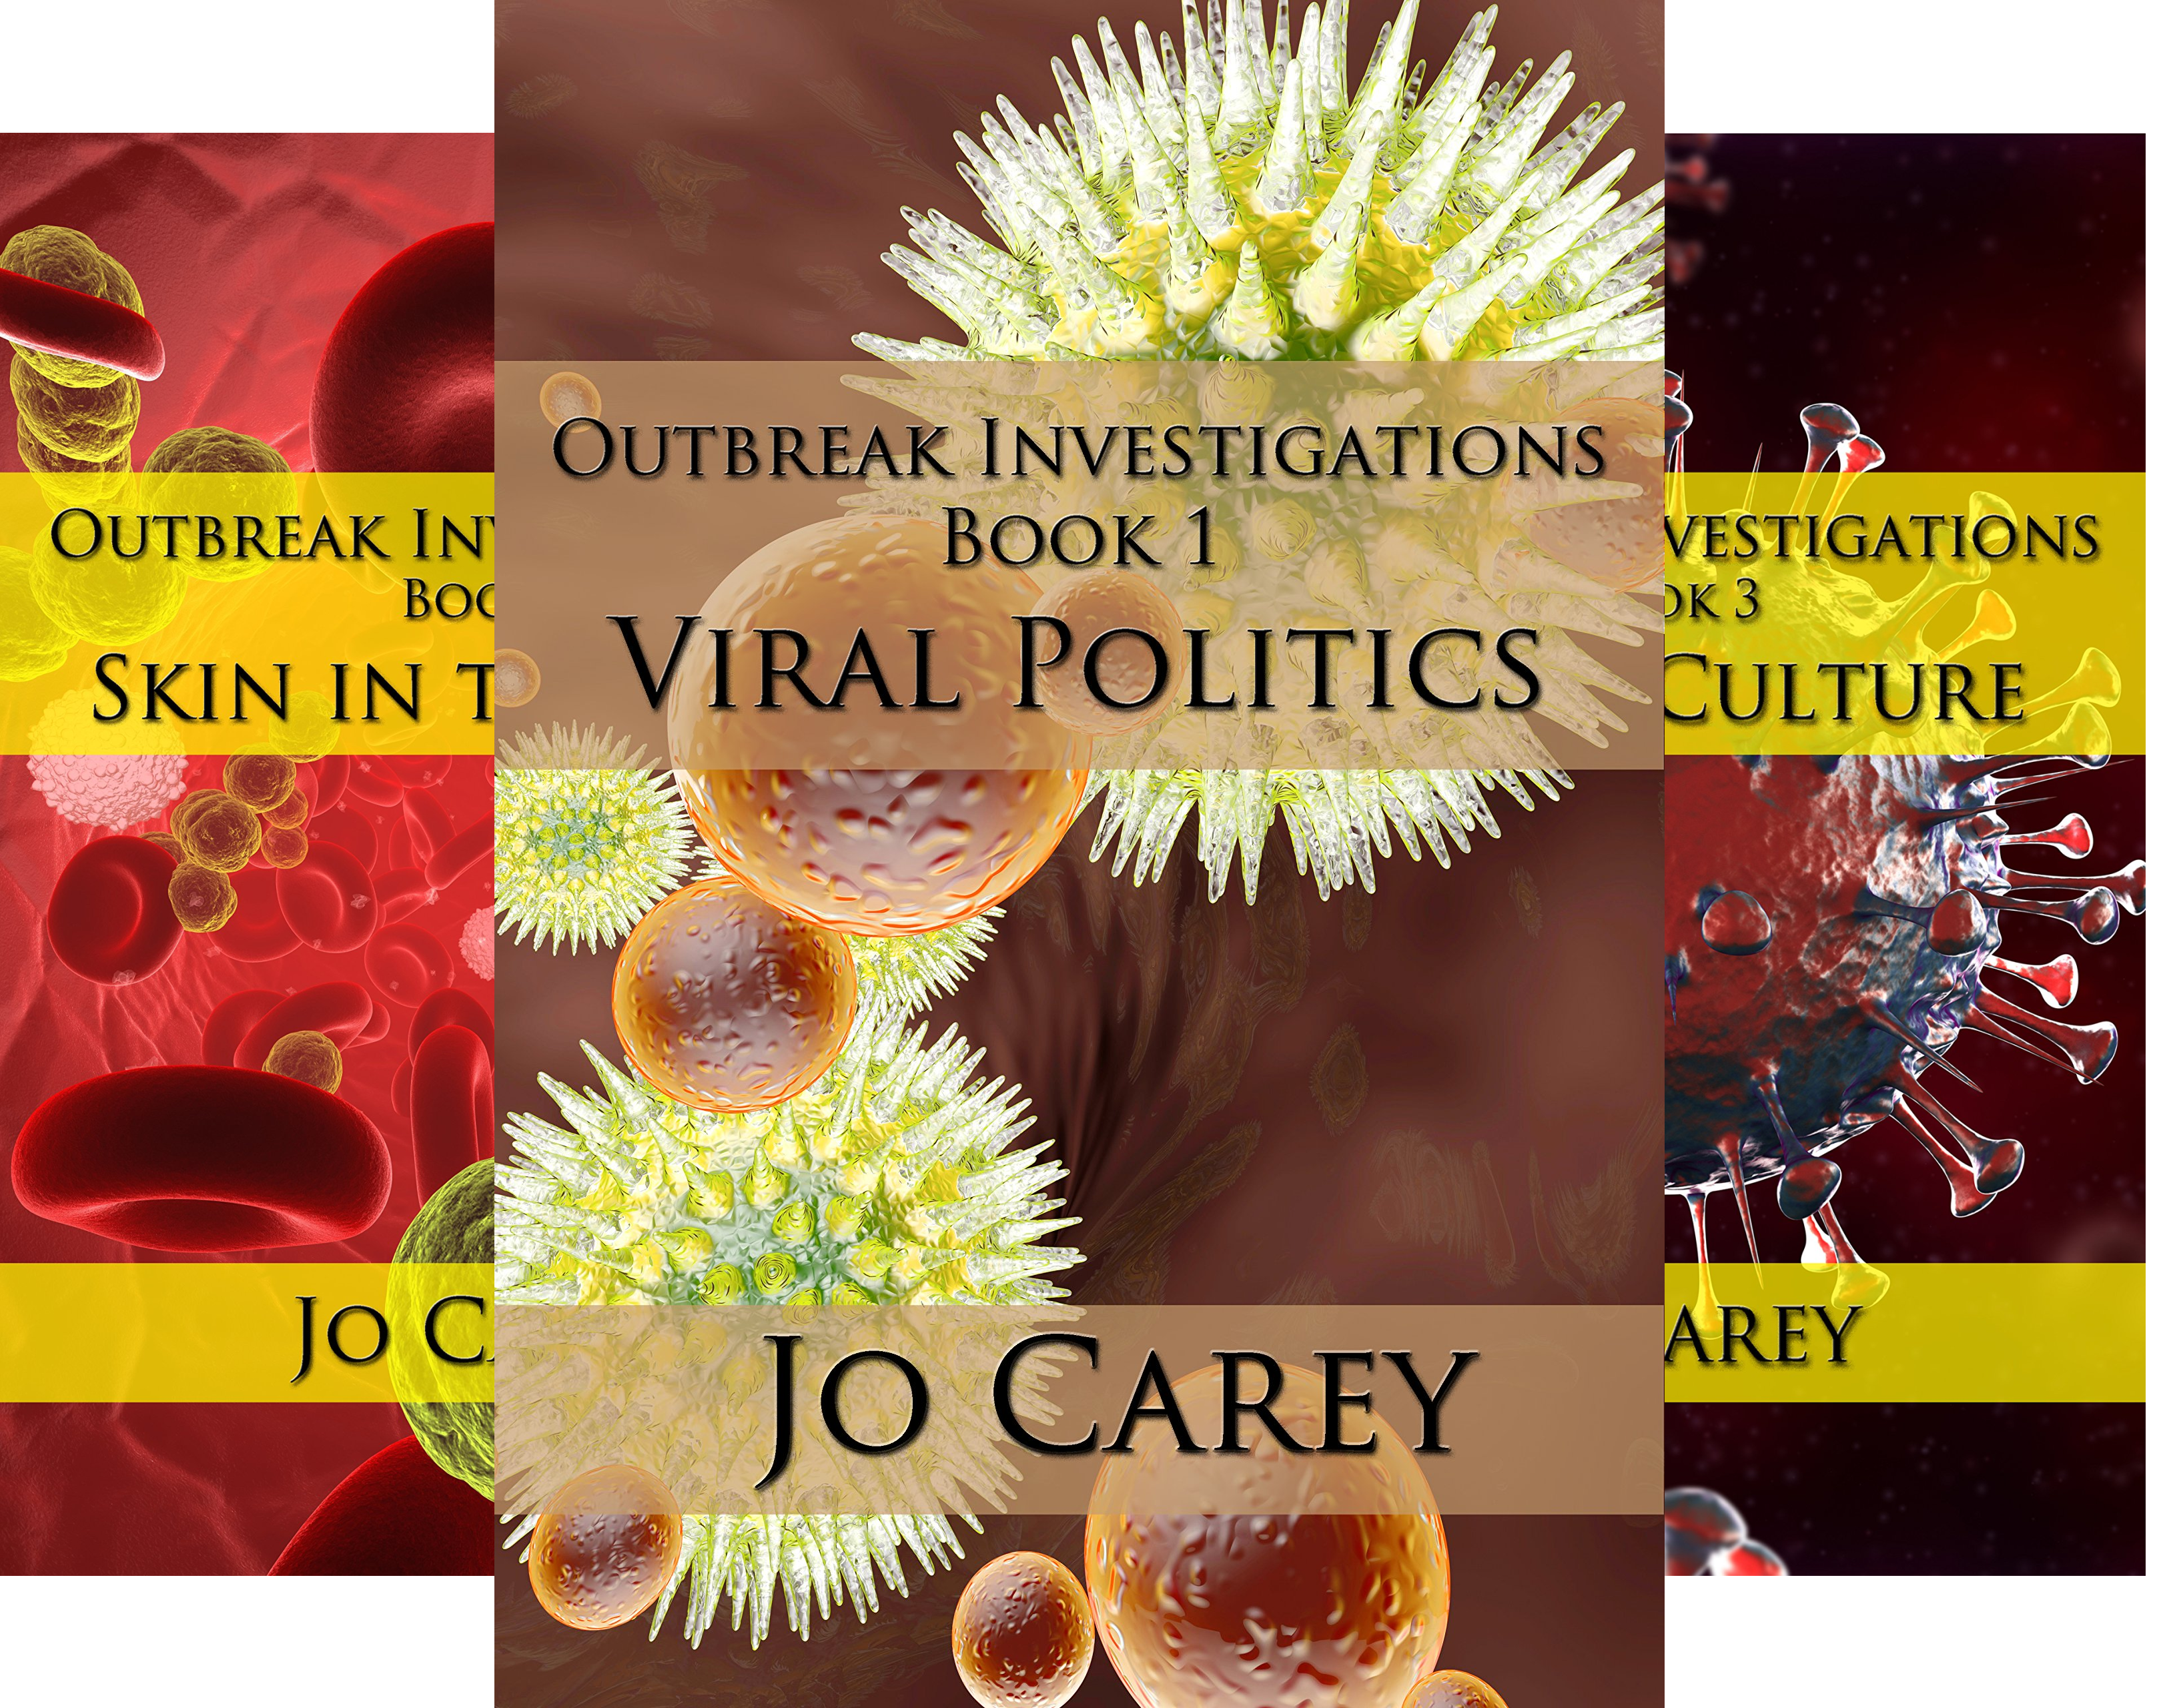 Outbreak Investigations (3 Book Series)